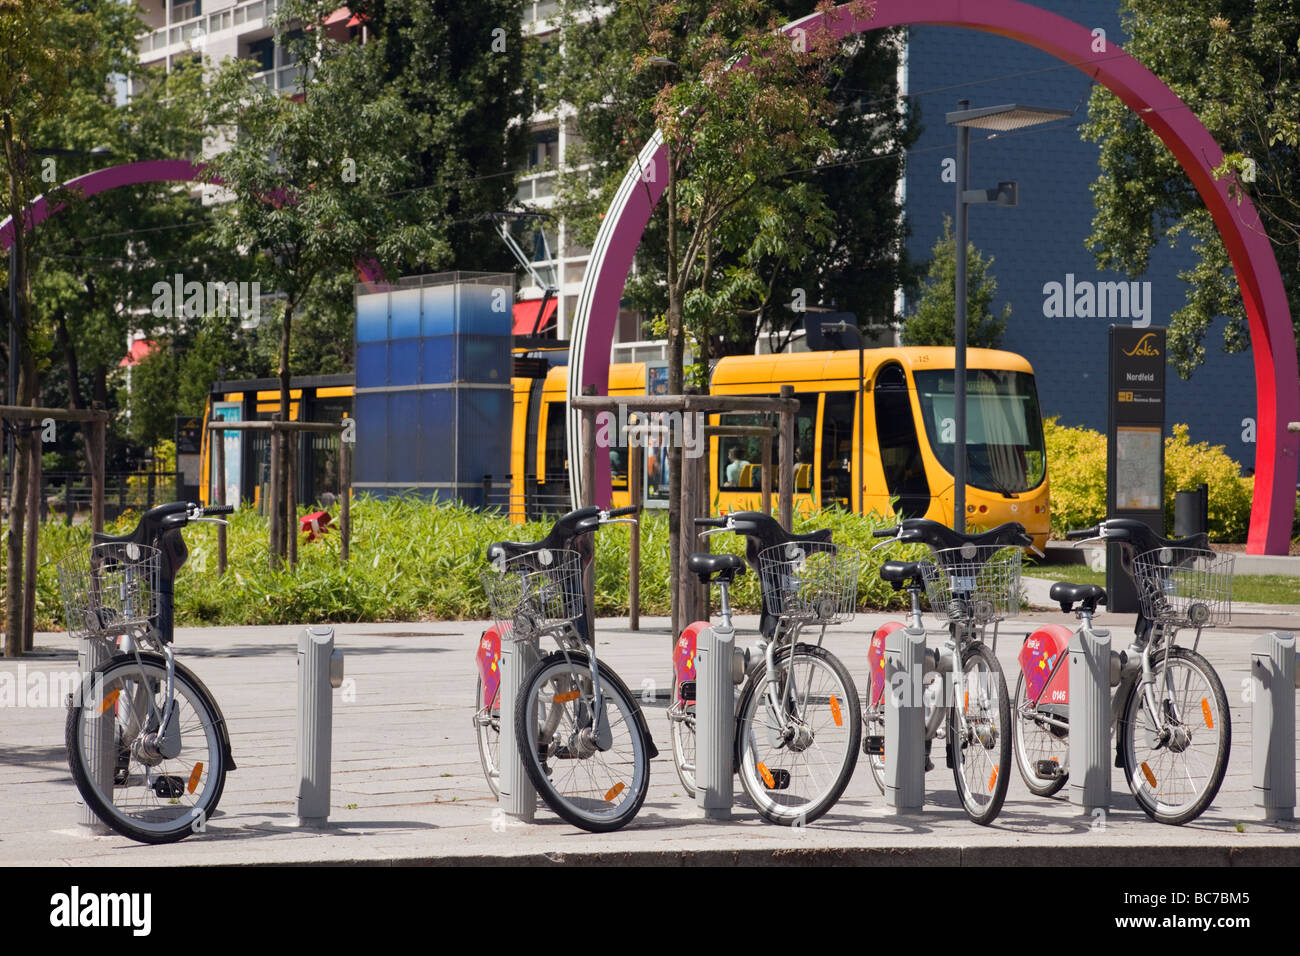 Mulhouse Alsace France Europe Velocity electric bikes for rent by tramway station with yellow tram train on light - Stock Image